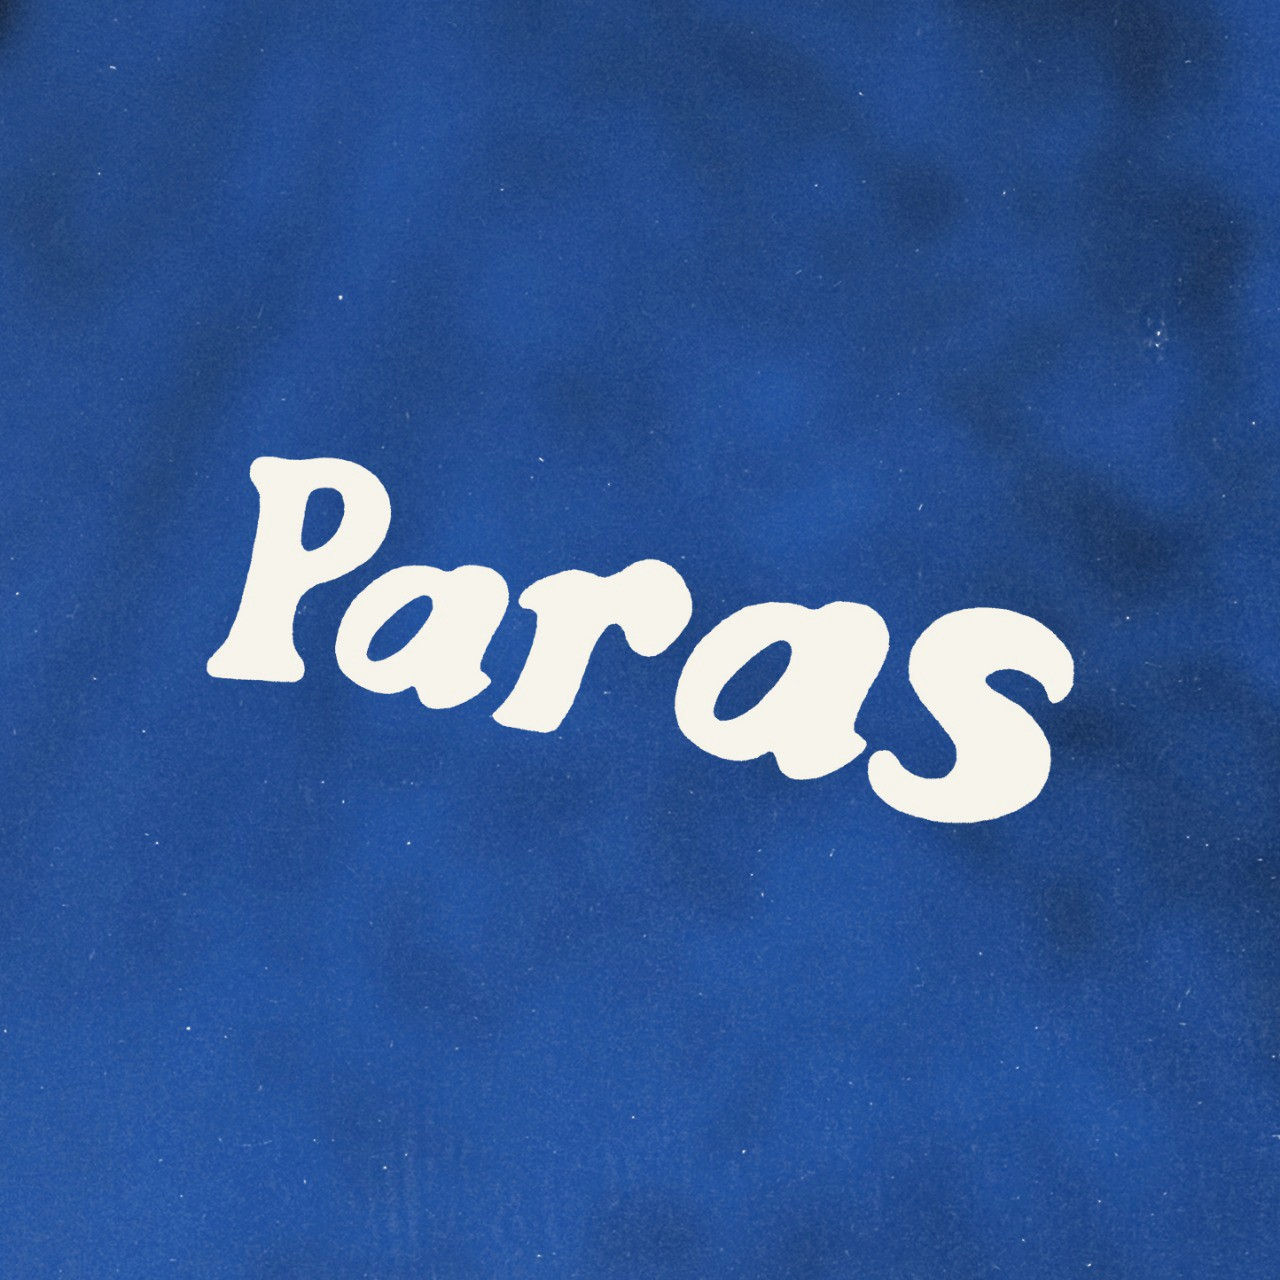 Paras—Balinese hospitality culture and history